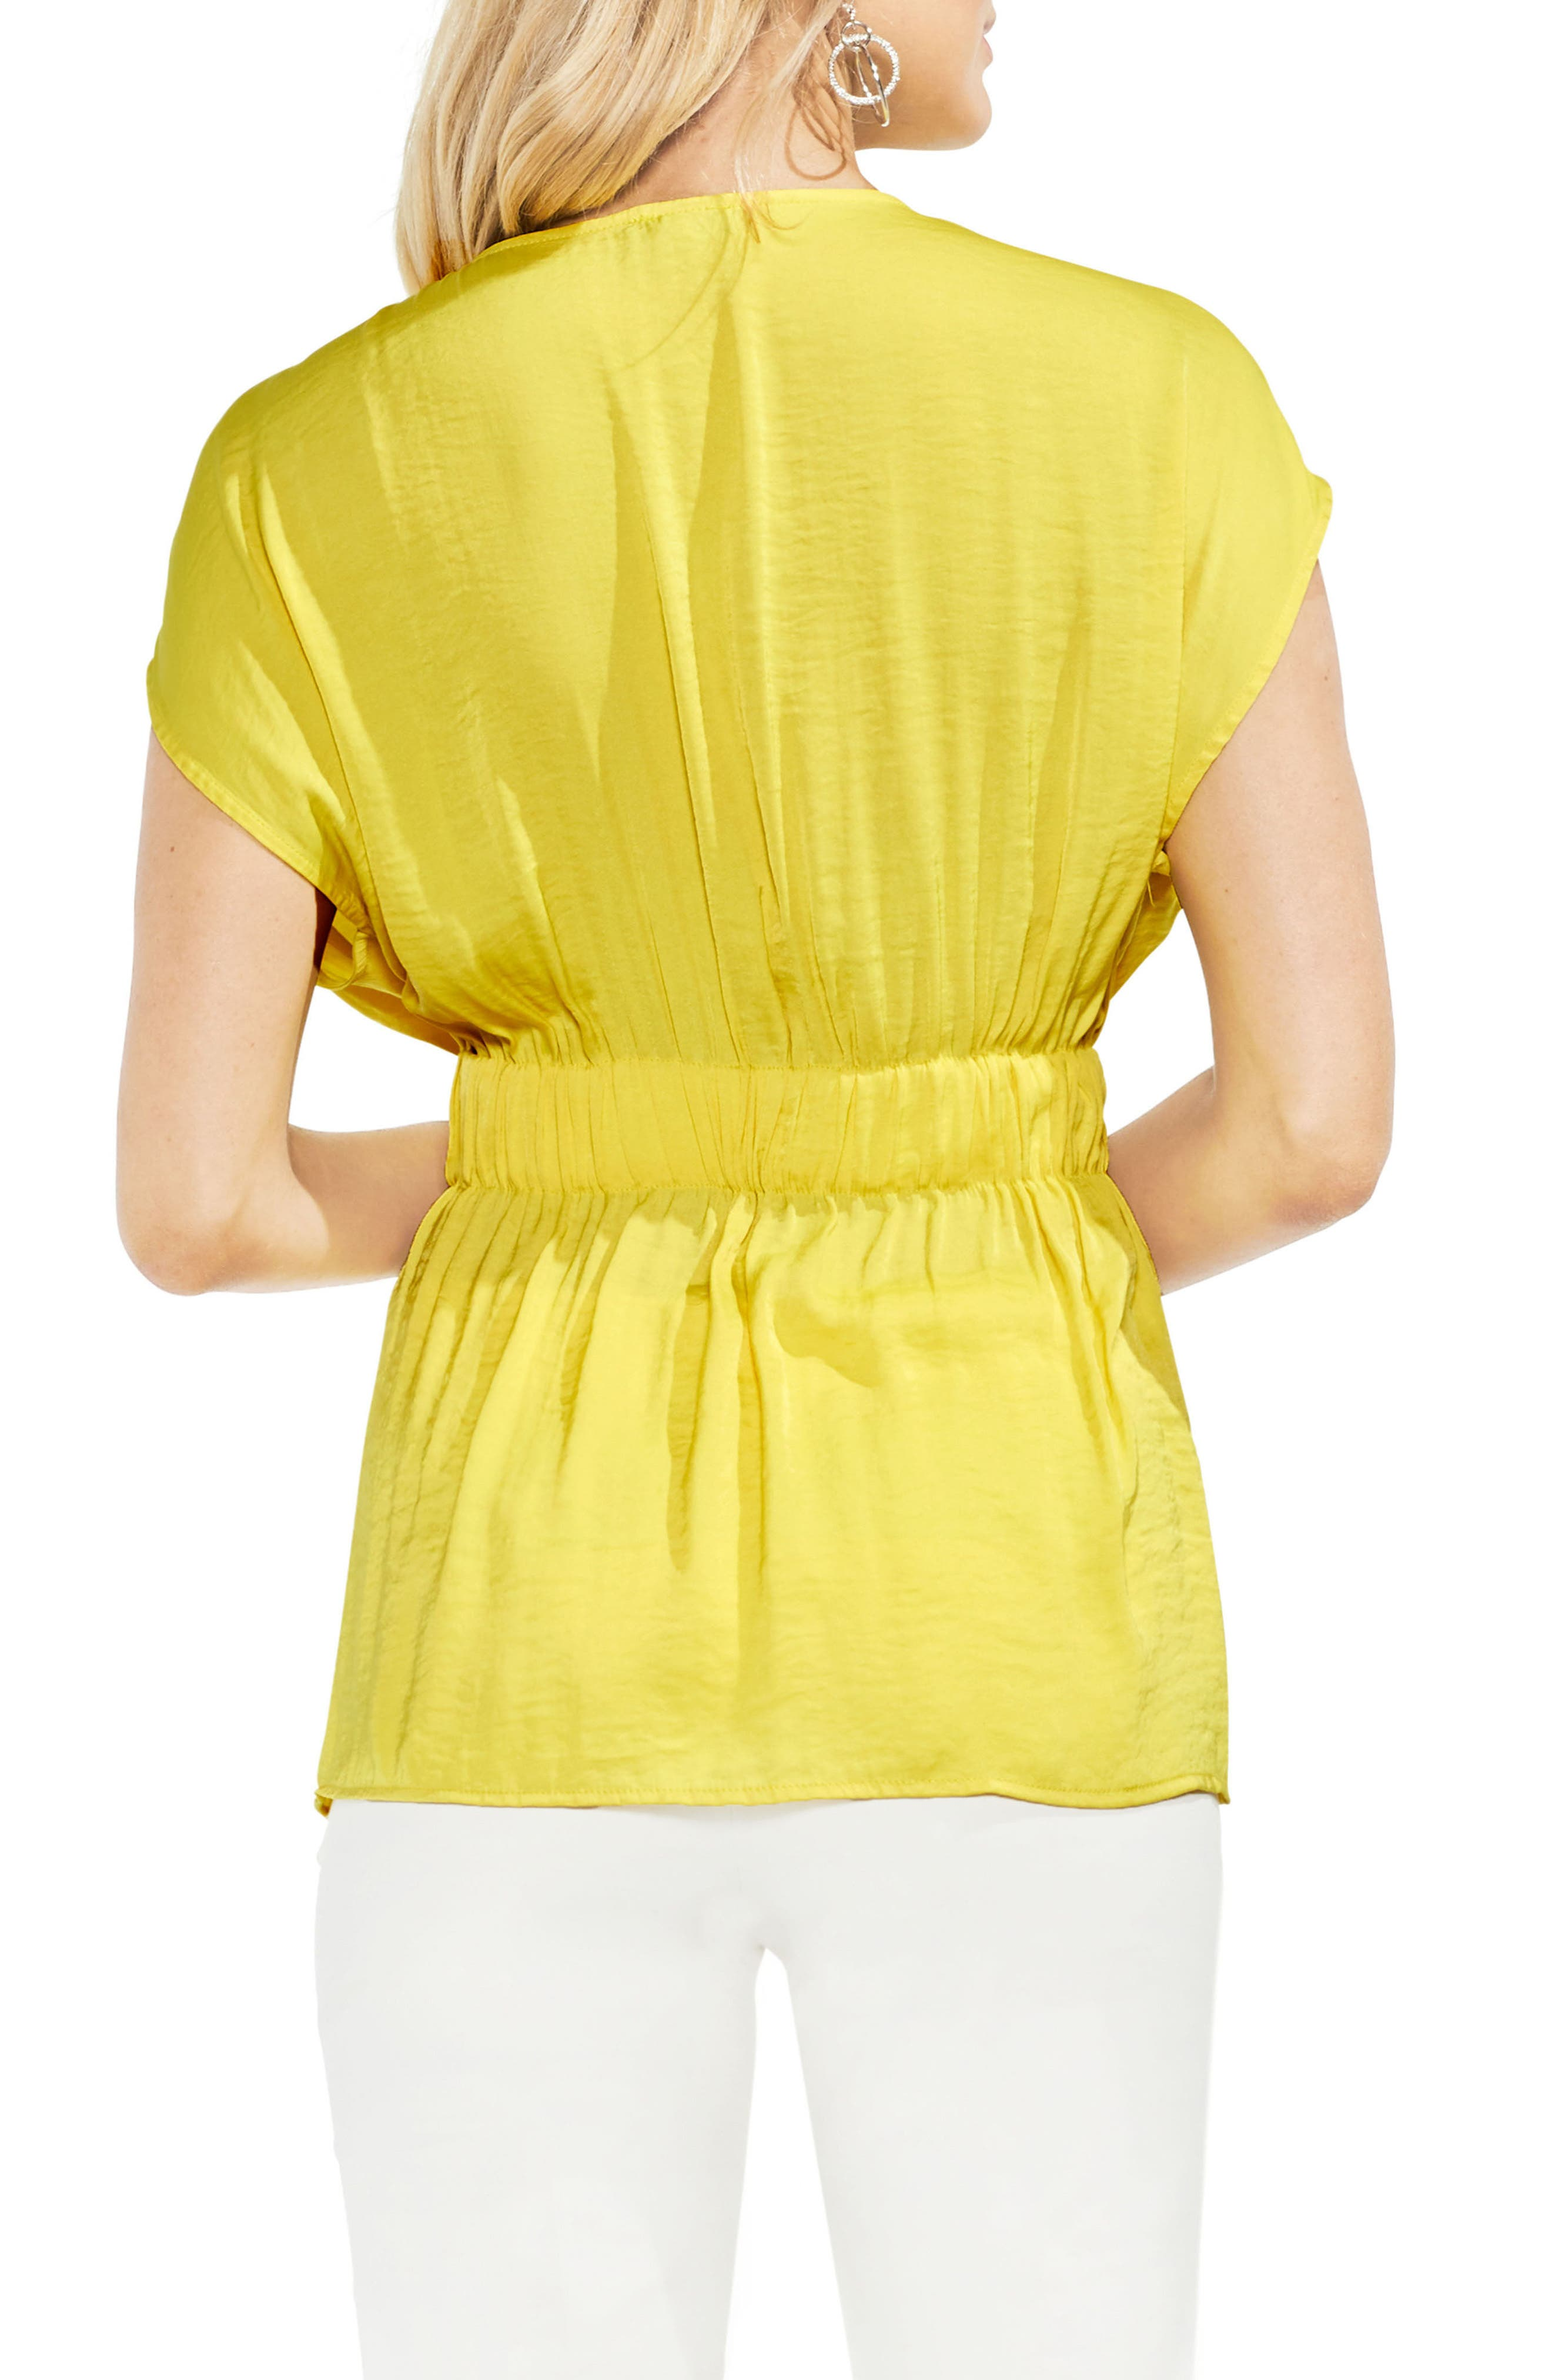 Cinched Waist Top,                             Alternate thumbnail 2, color,                             Pineapple